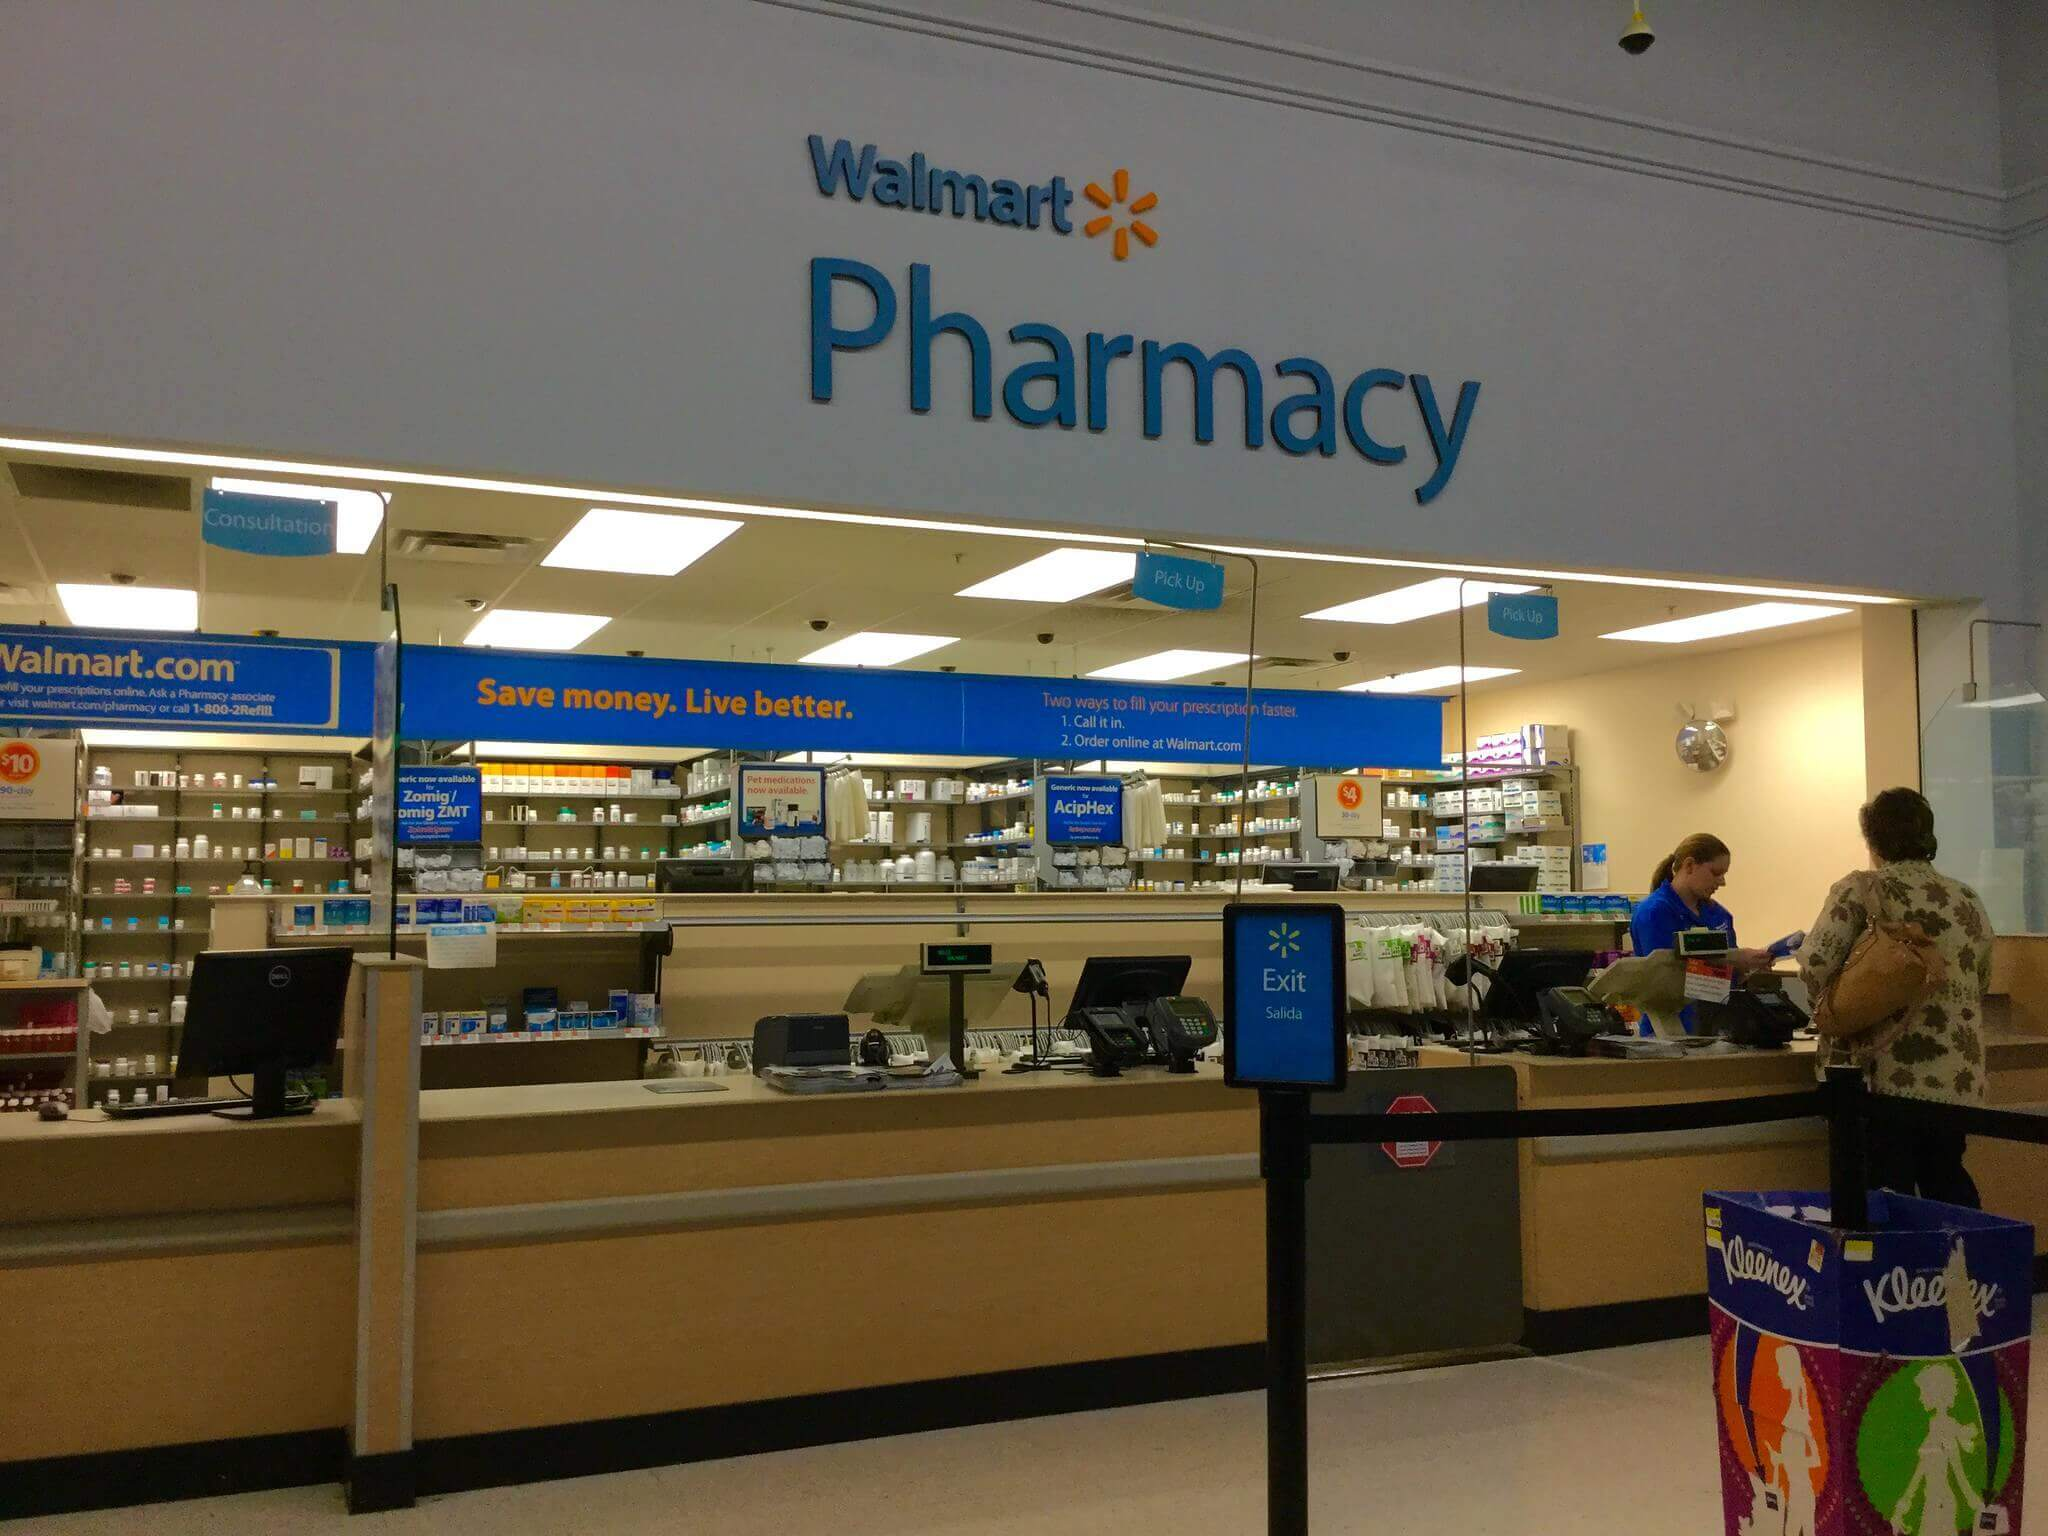 Photo of Walmart pharmacy with a cashier inside and a customer